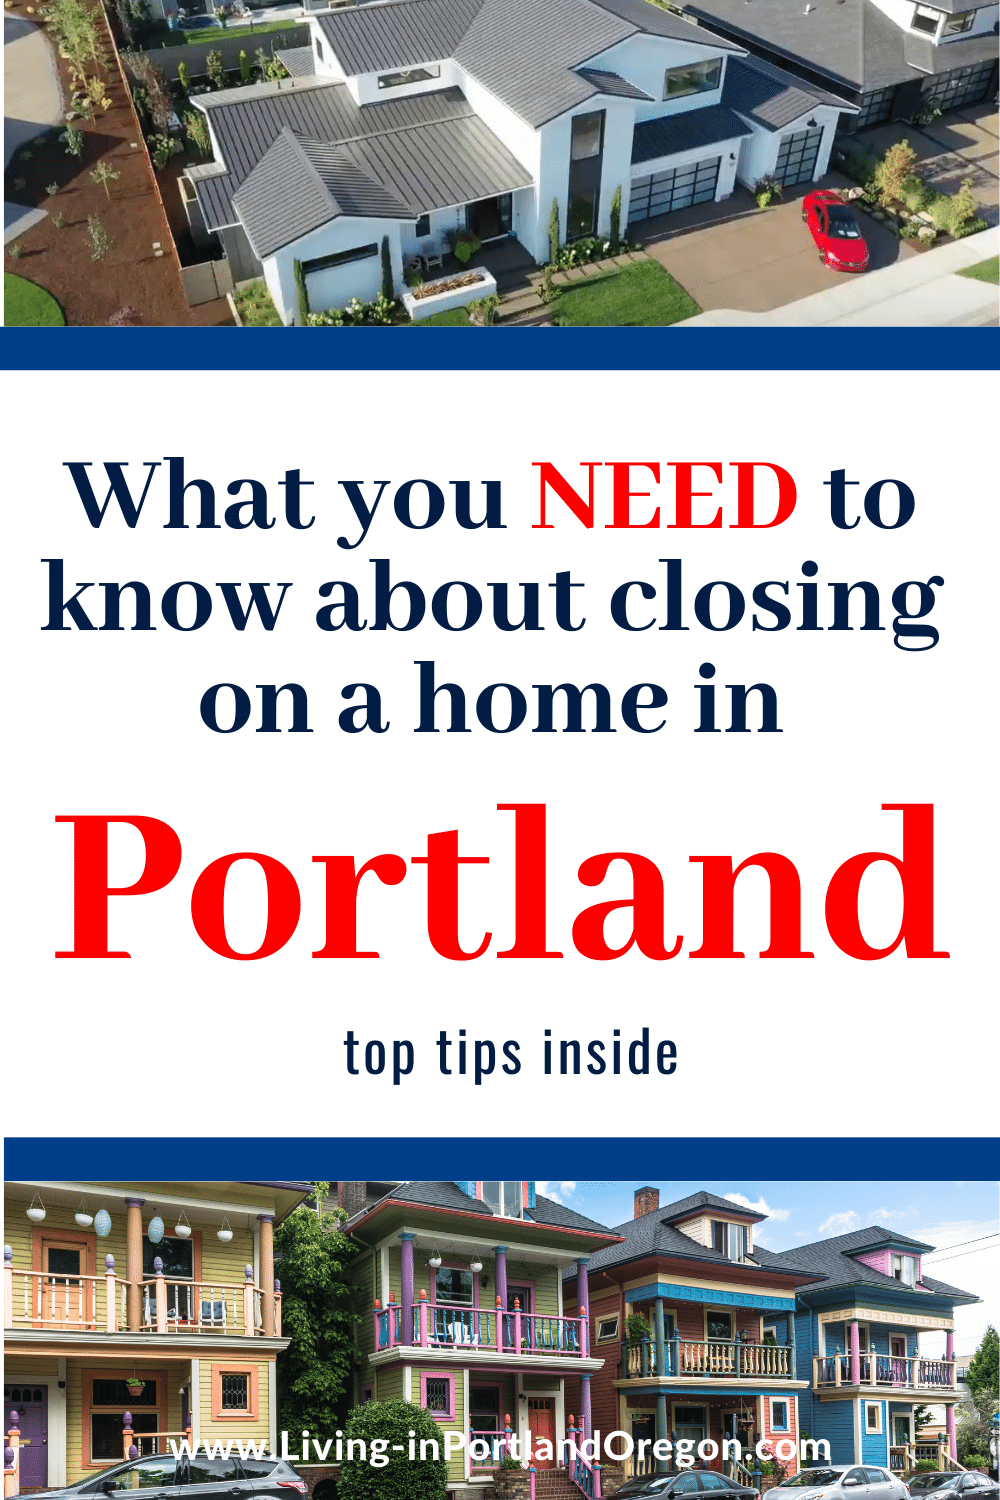 What to expect when closing on a home in Portland Oregon pins (4)